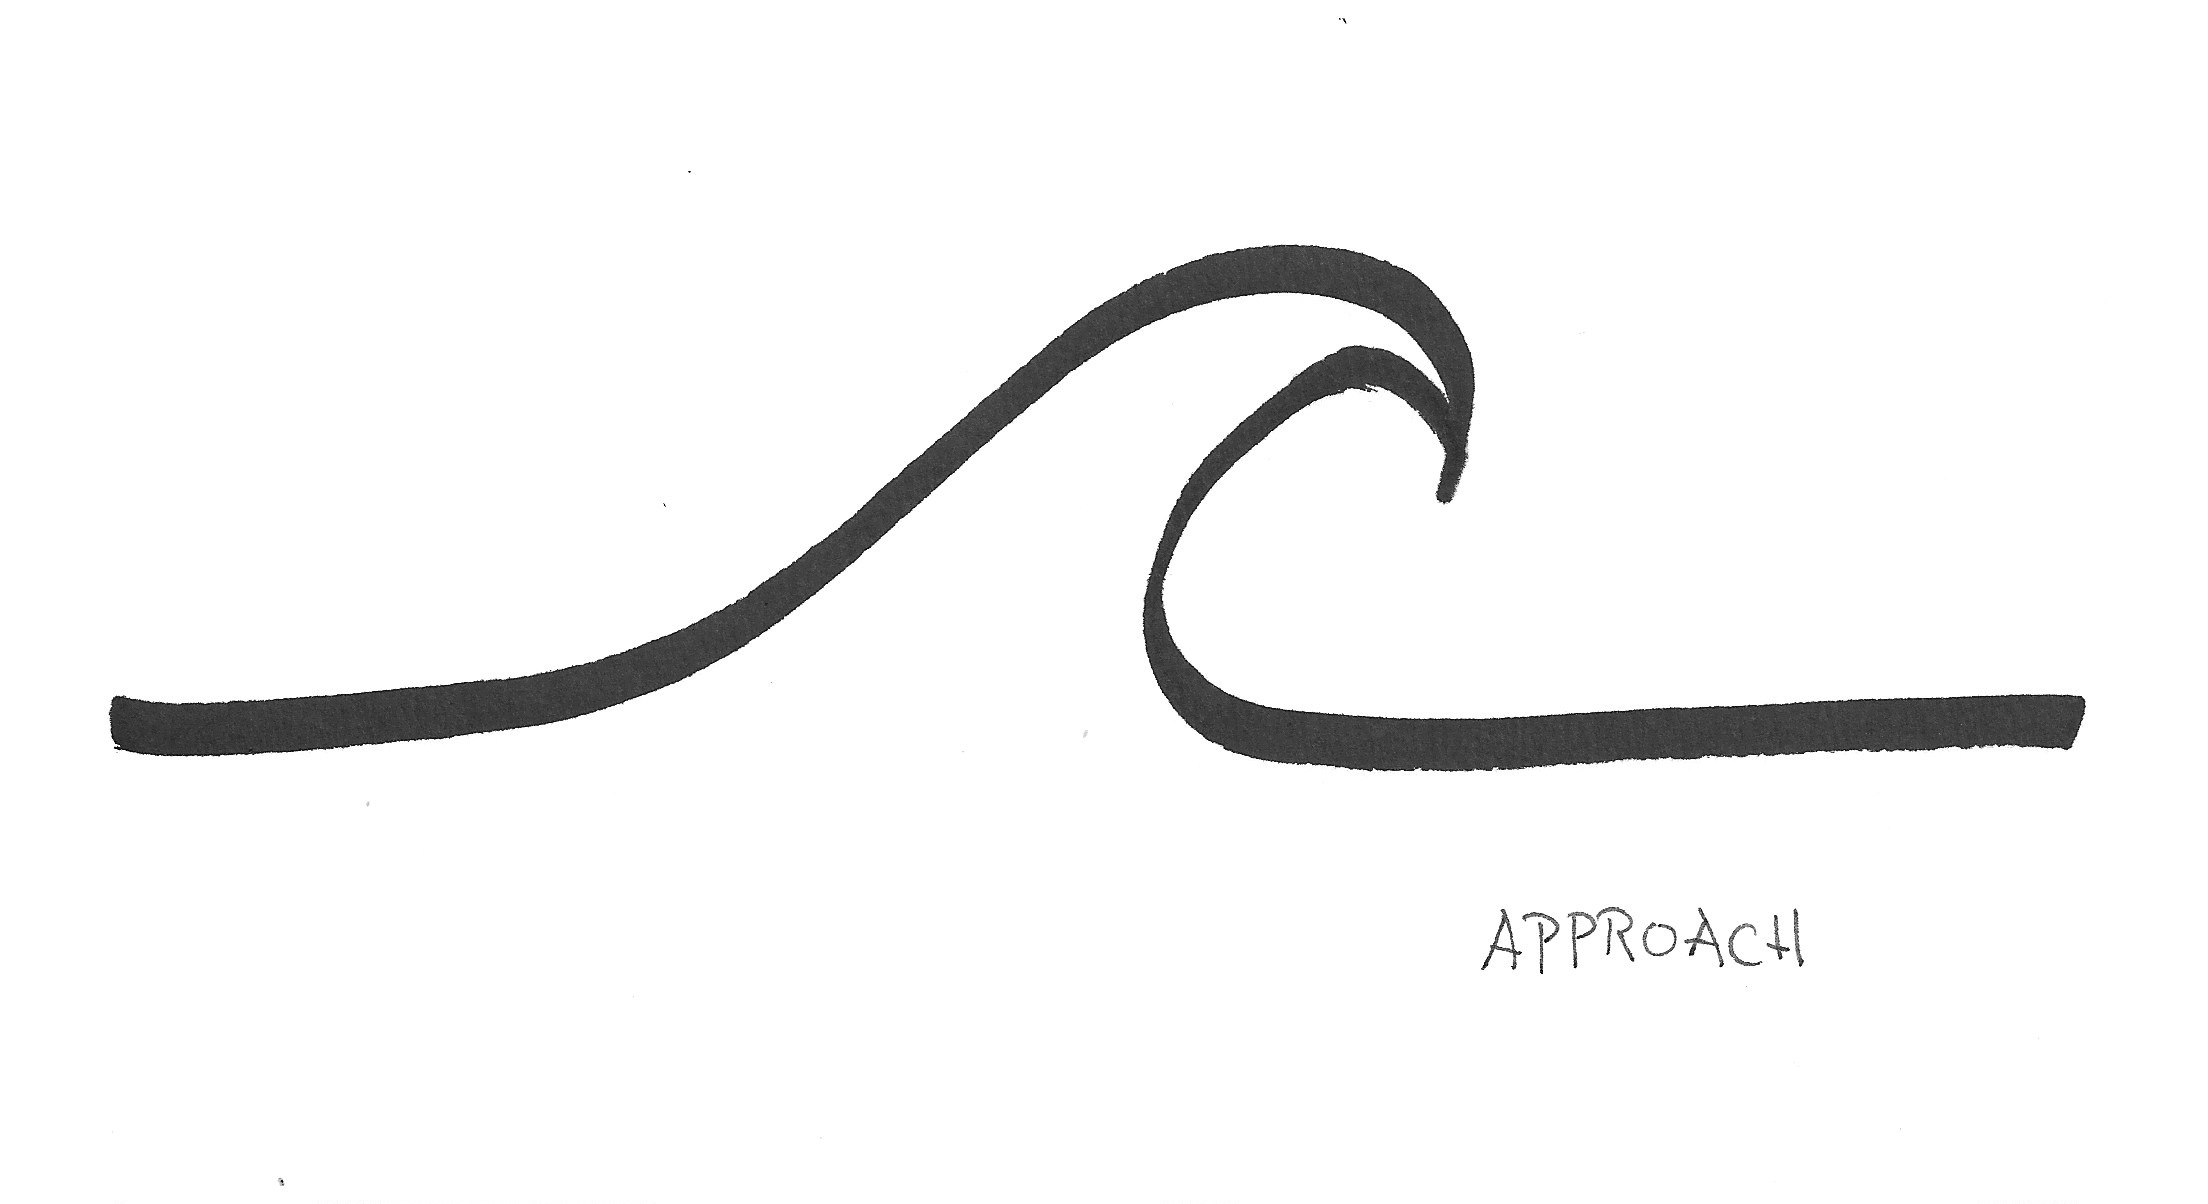 White waves clipart 20 free Cliparts | Download images on Clipground